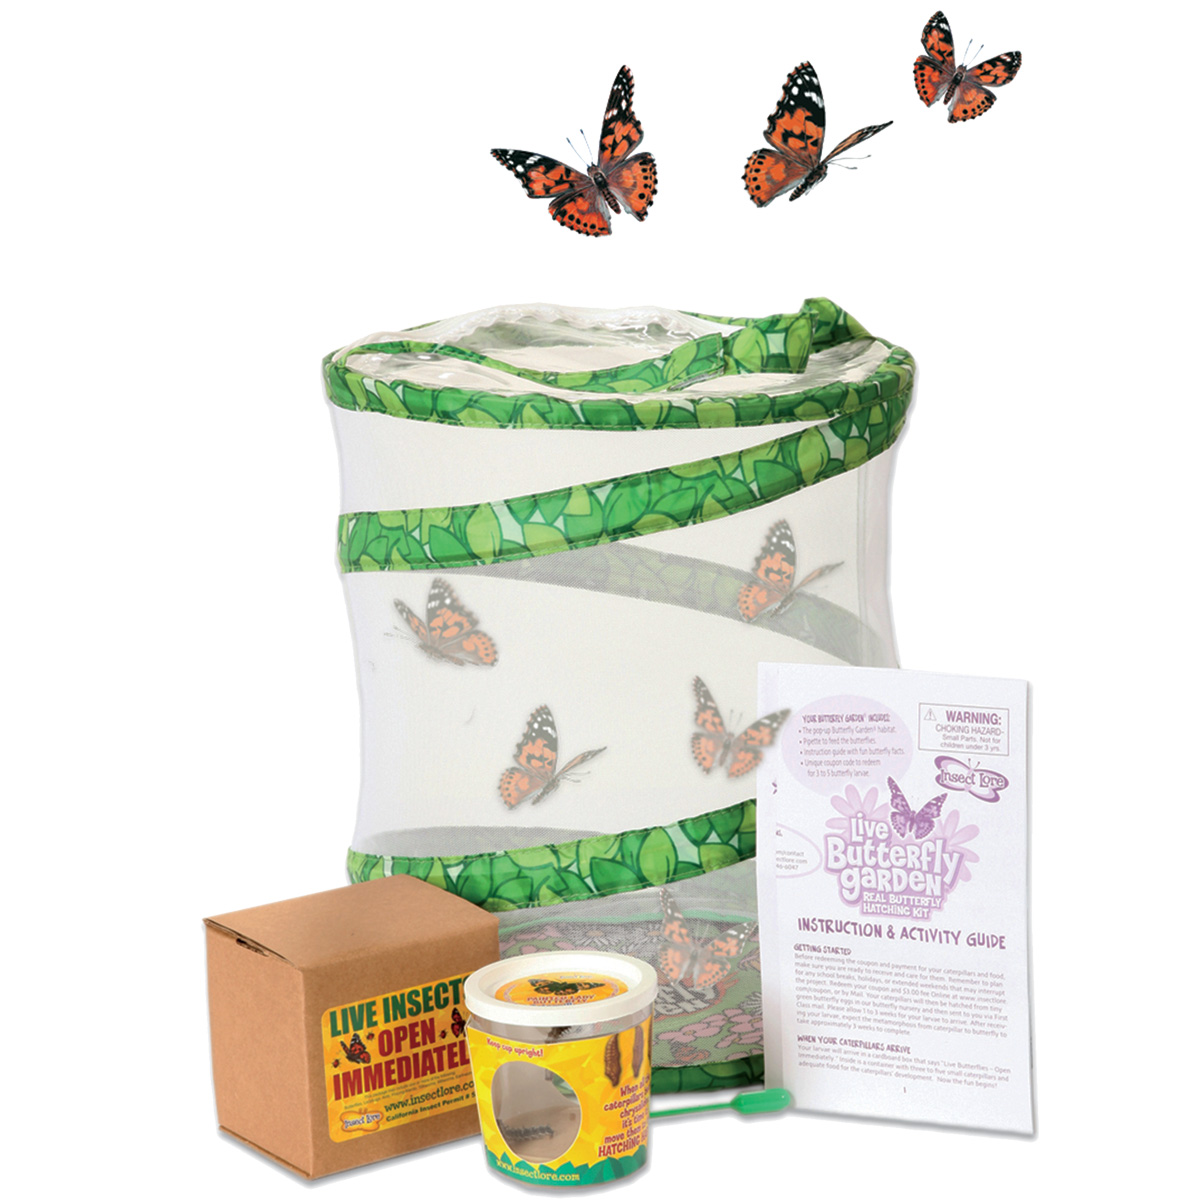 Live Butterfly Garden Kit | Explore Nature with a ...